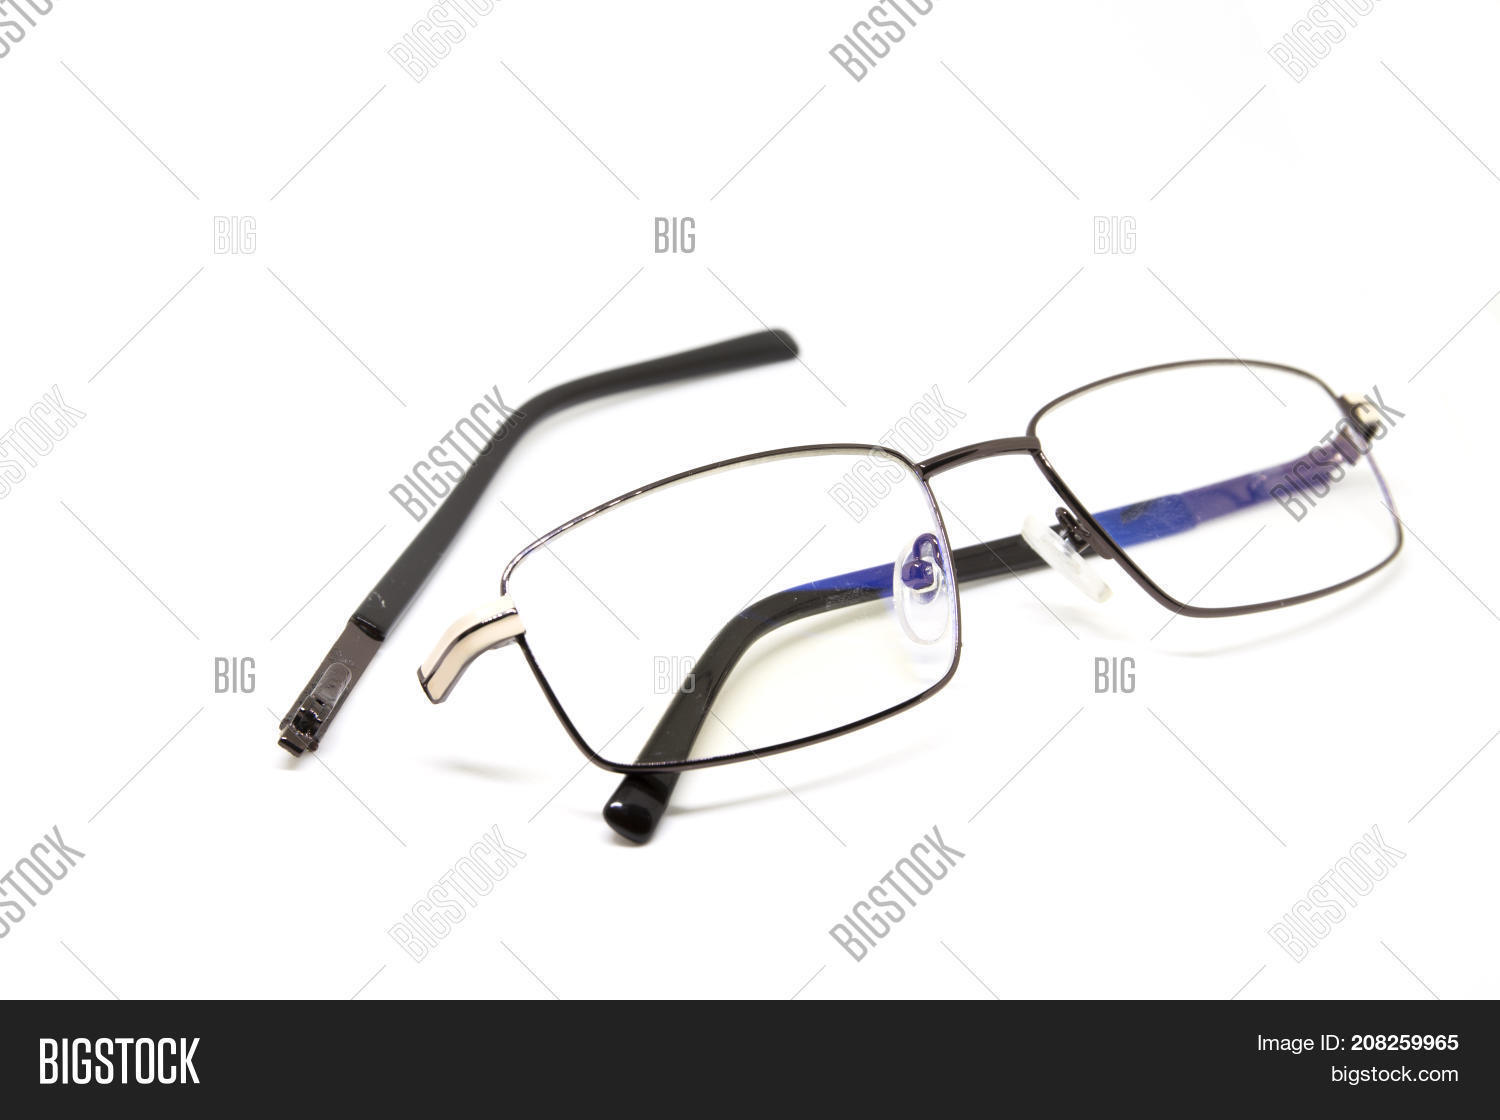 172622c01b Broken glasses on white background. Eye glasseswith thin metal rim after  accident. Computer glasses